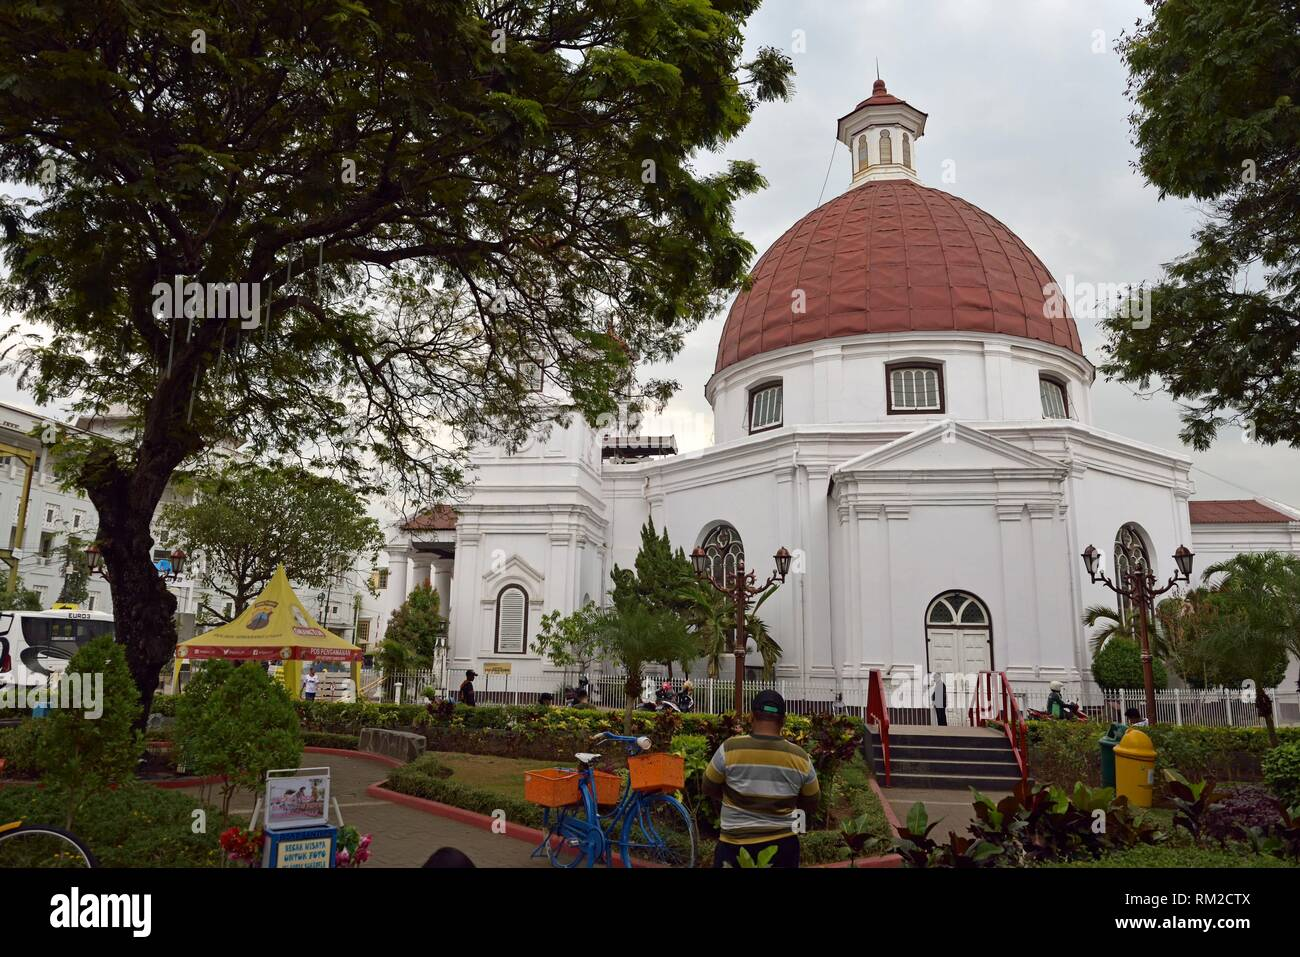 Protestant Church in Western Indonesia Immanuel, Old Town of Semarang, Java island, Indonesia, Southeast Asia. - Stock Image